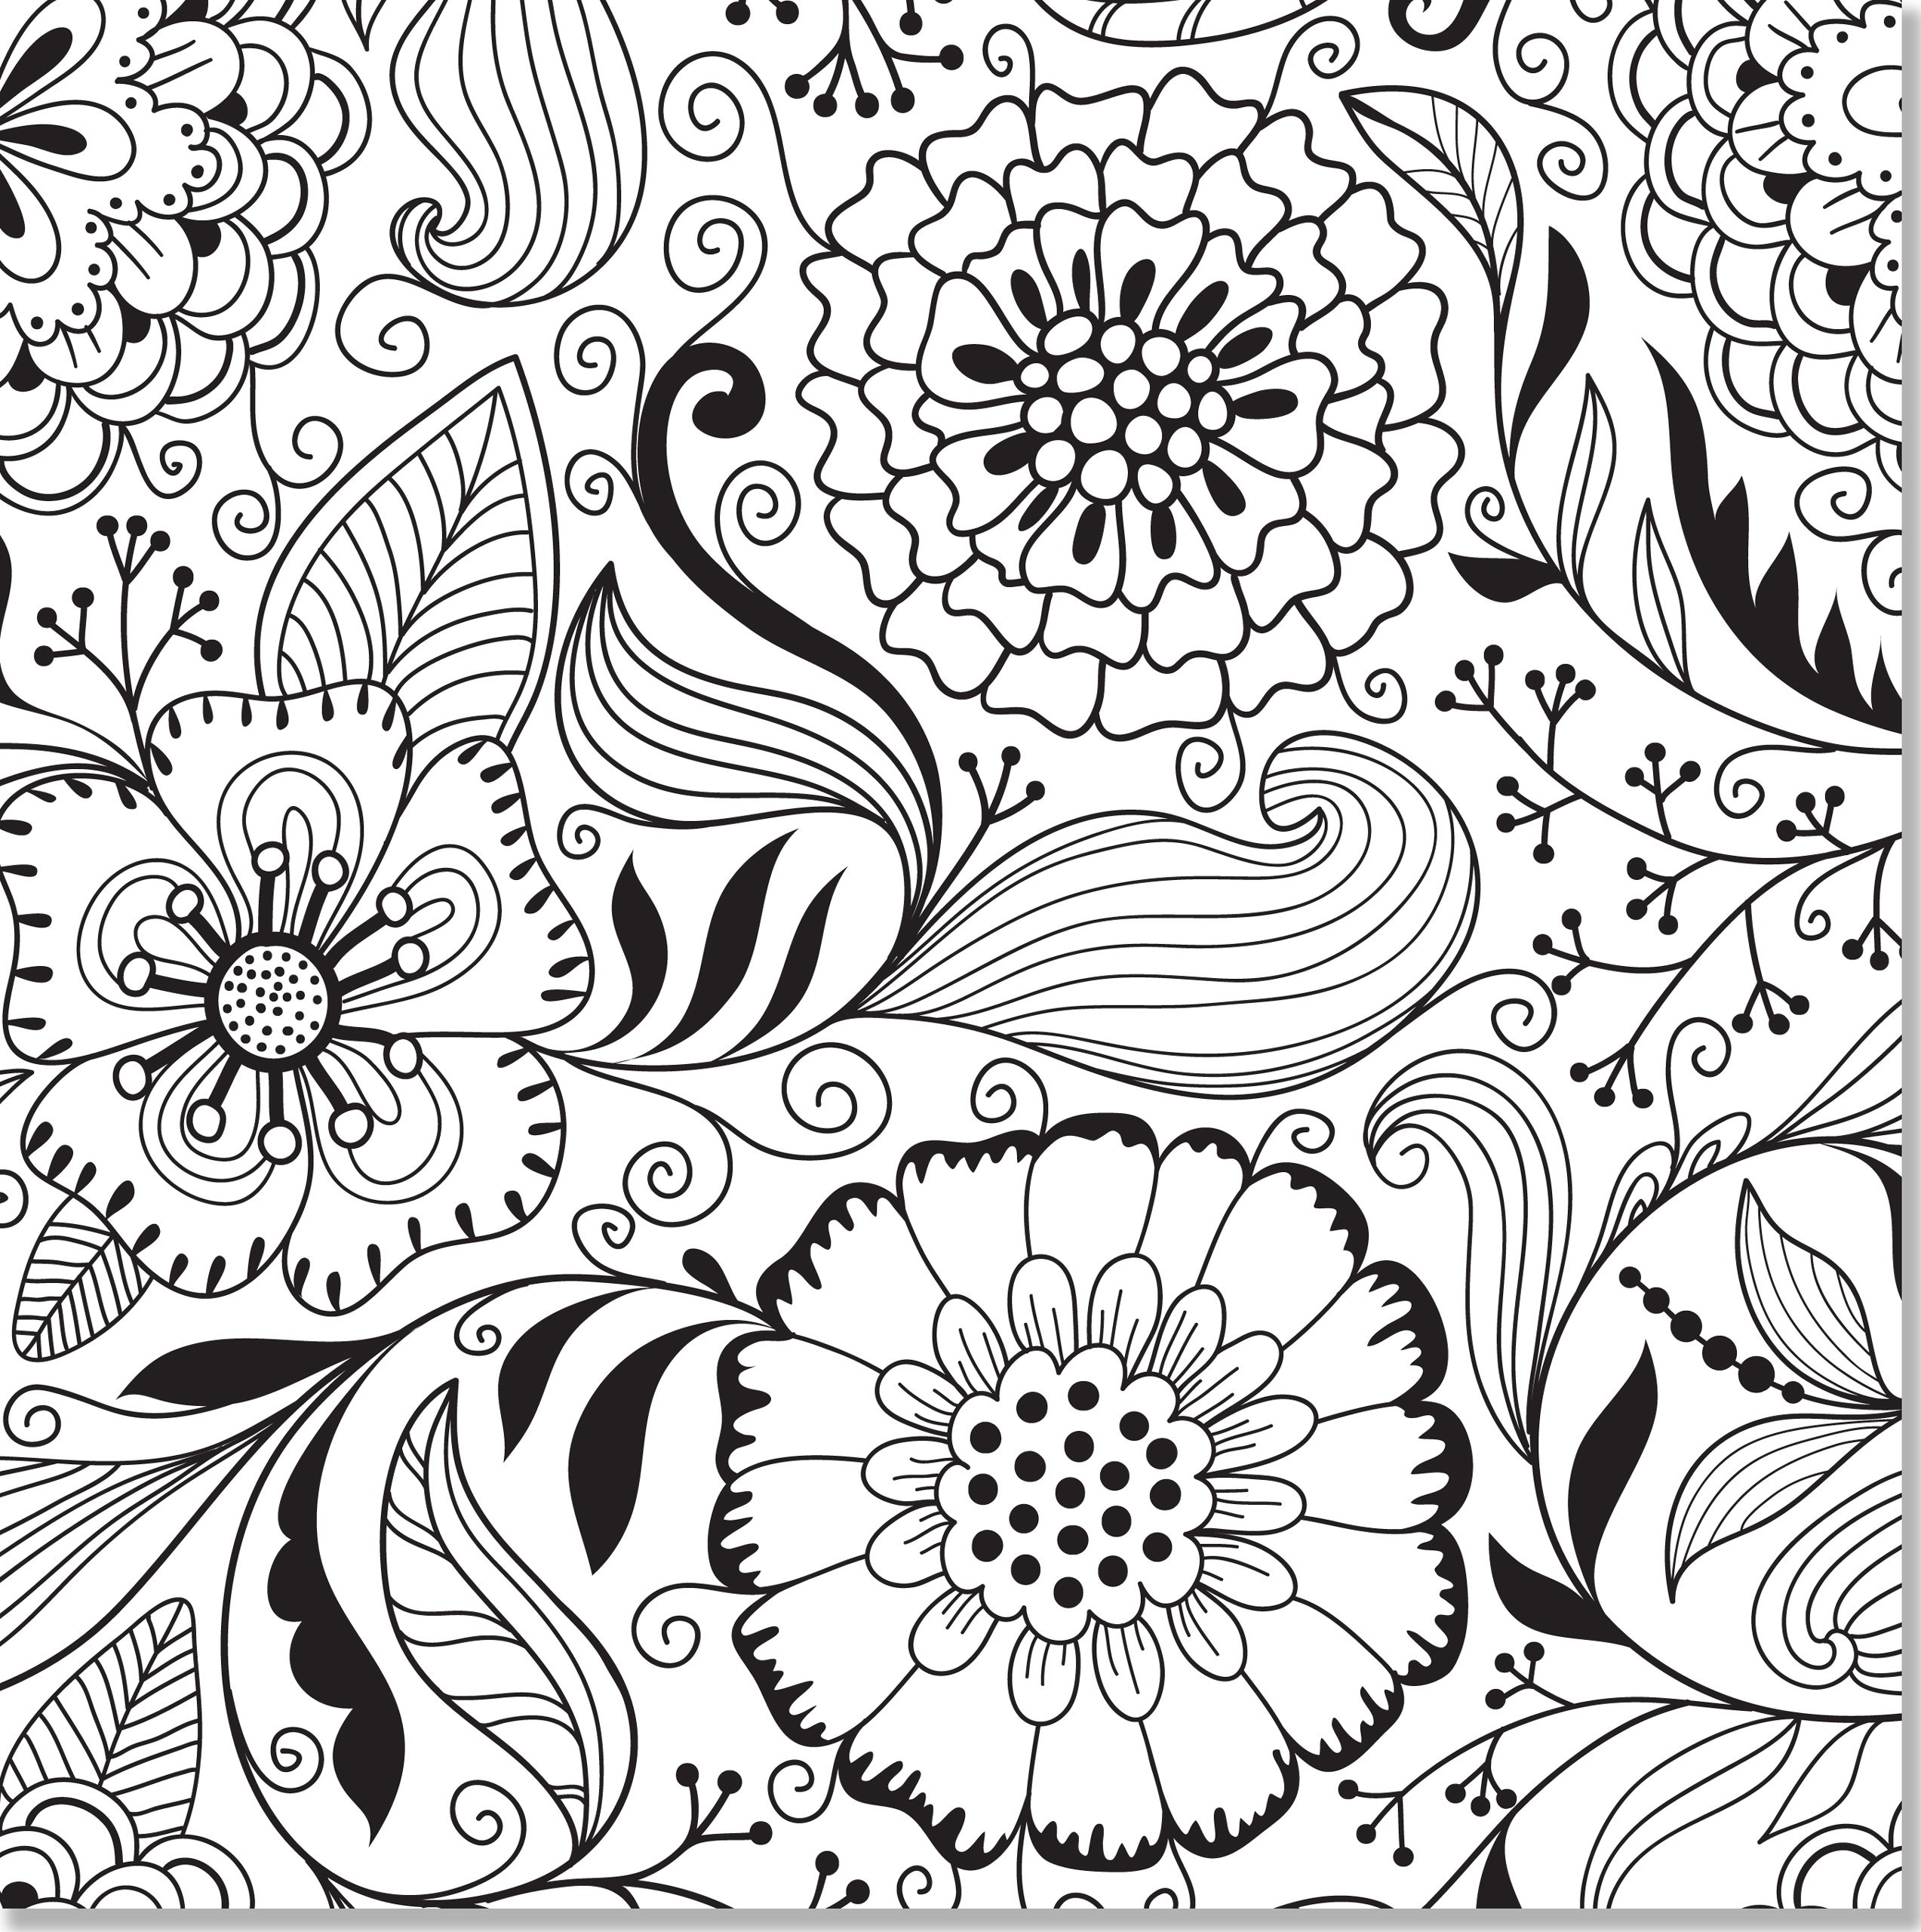 Floral Designs Adult Coloring Book 31 Stress Relieving Amazonca Peter Pauper Press Books